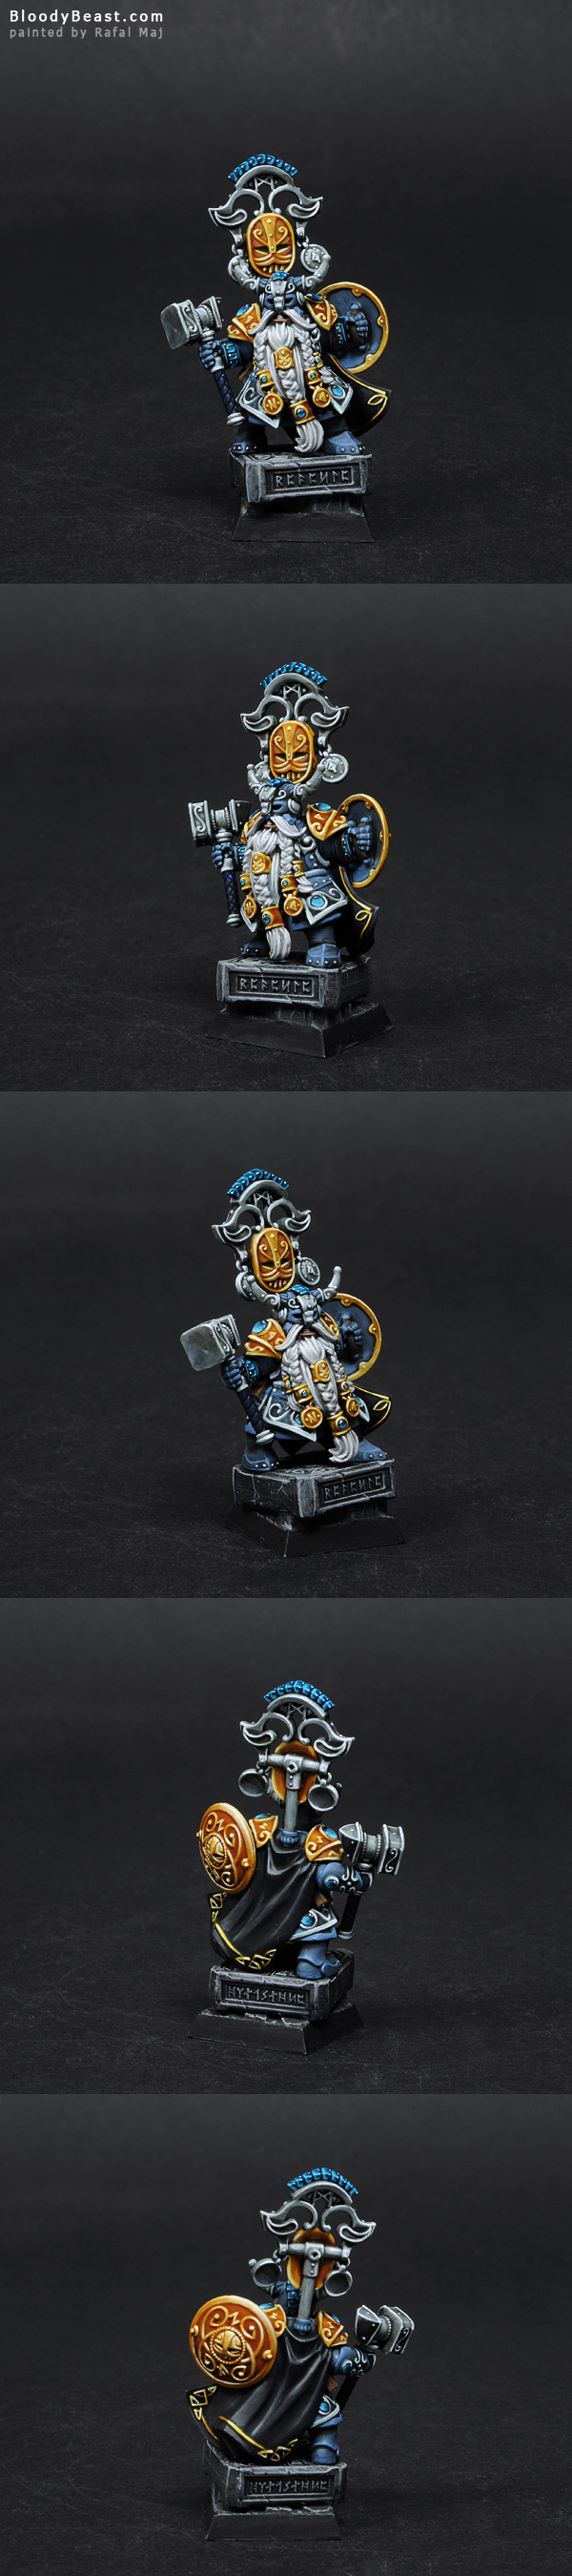 Dwarf Belegar Ironhammer painted by Rafal Maj (BloodyBeast.com)